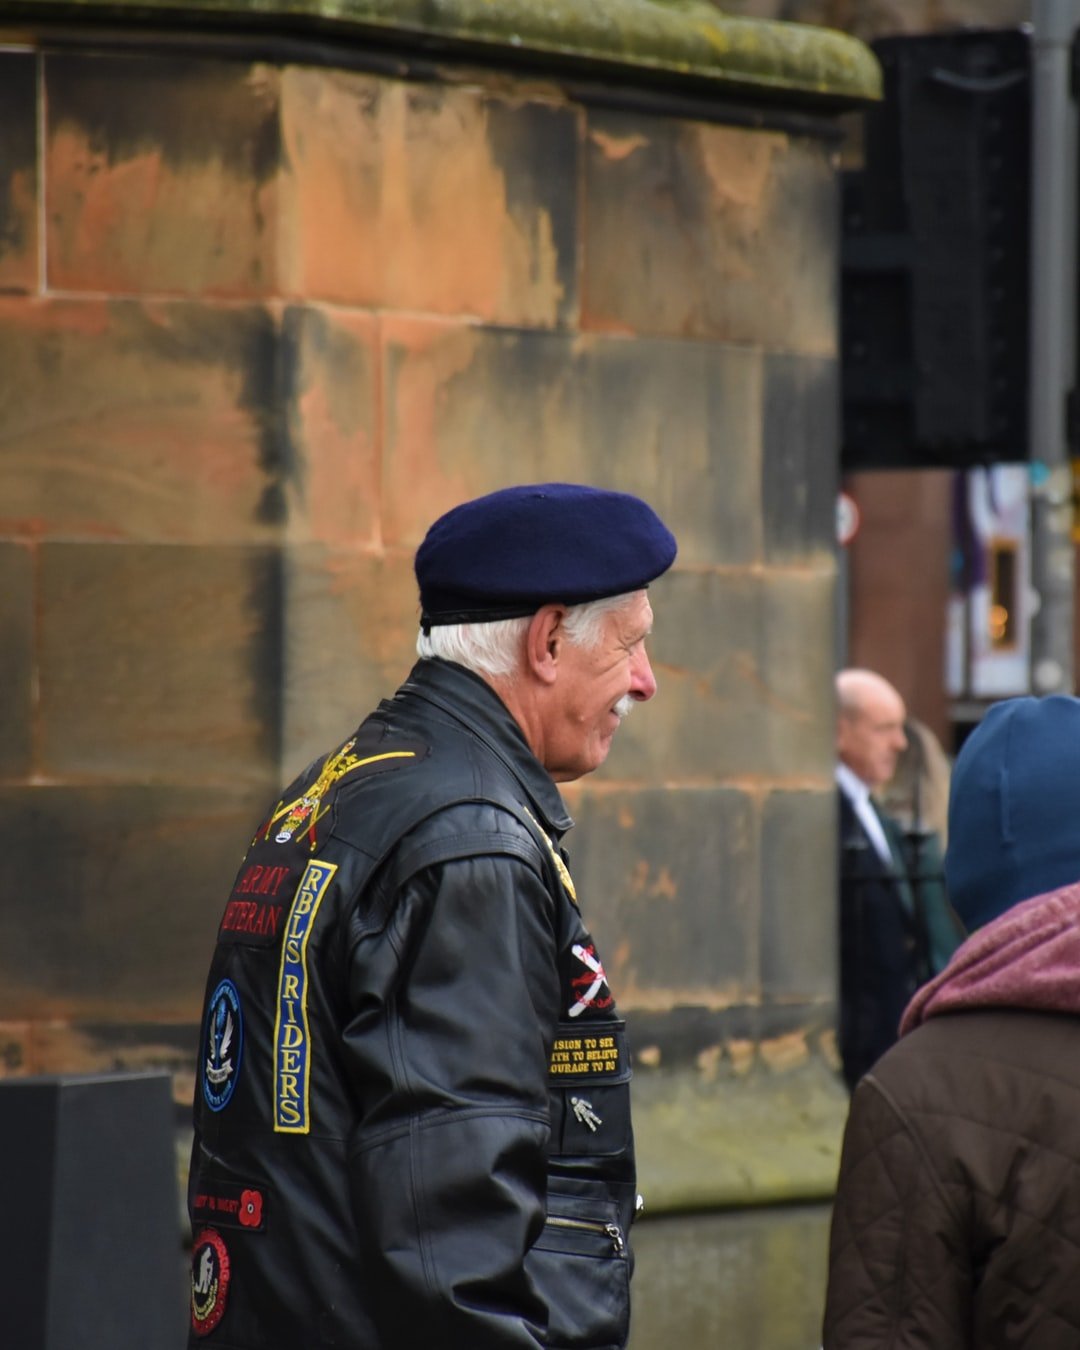 One century from the moment World War One ended, hundreds gather around Scott Monument in Edinburgh, Scotland, to pay moments in silence for soldiers lost. This photo was taken shortly afterward.